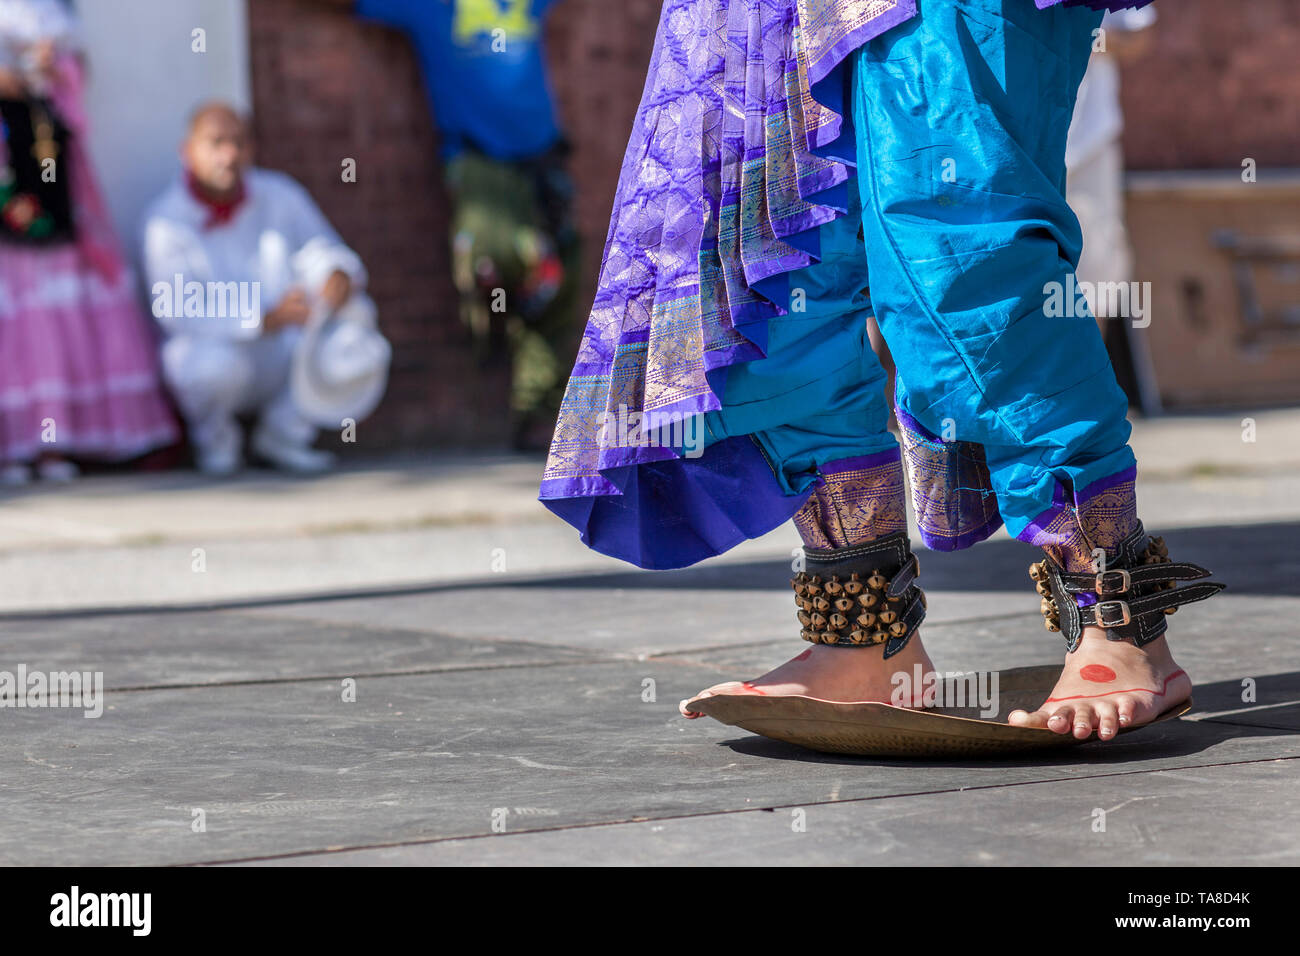 Painted Young Girls' Feet on Tray While  Doing Traditional Indian Dance, Ankle Bells, Blue and Purple Silk Costume, 'One River, Many Streams' Folk Festival, Part of Spirit of Beacon Festival, Beacon, New York, USA - Stock Image